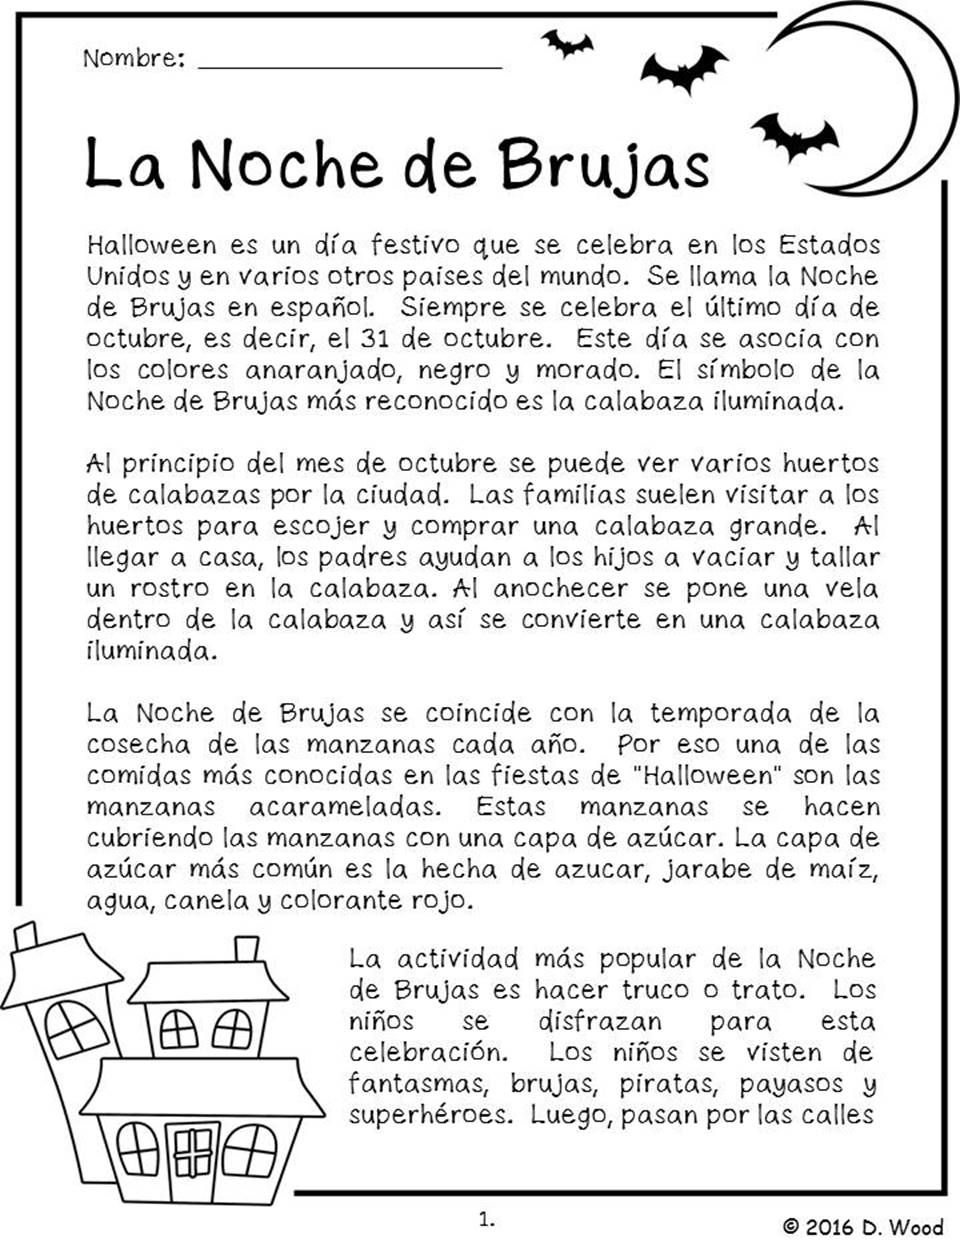 worksheet Spanish Reading Comprehension Worksheets halloween spanish la noche de brujas bilingual reading english on the celebration of it includes a total of